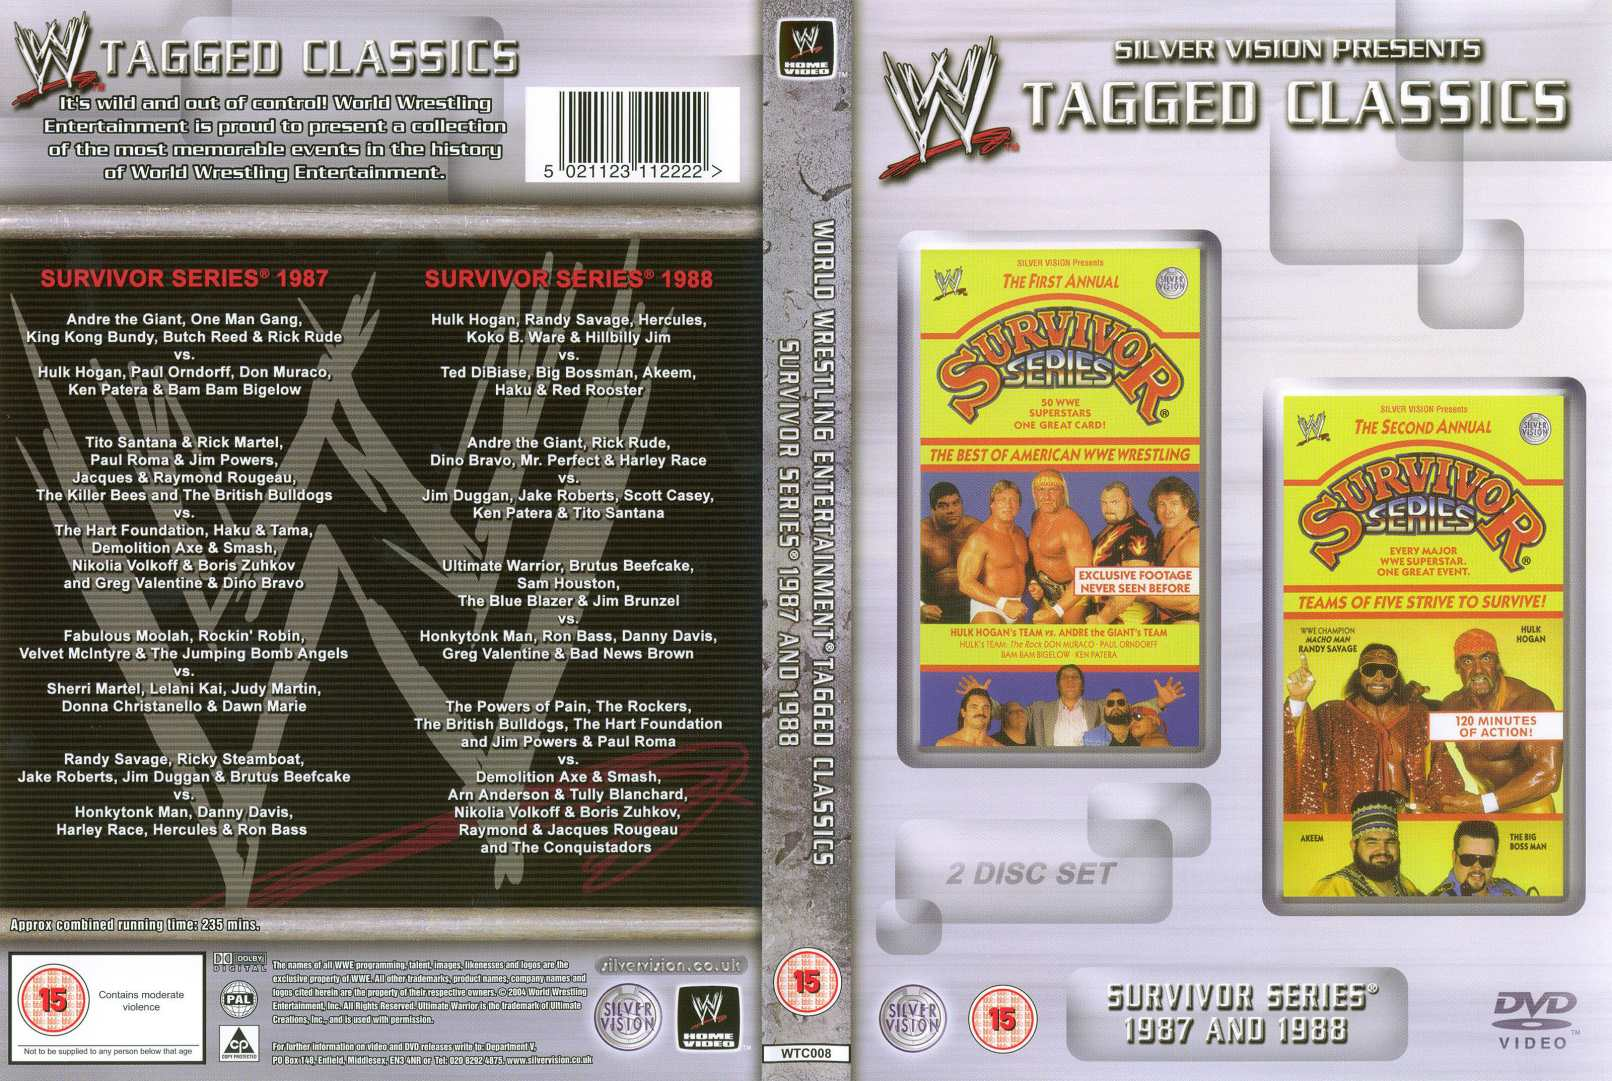 wwe_tagged_classics_-_survivor_series_1988